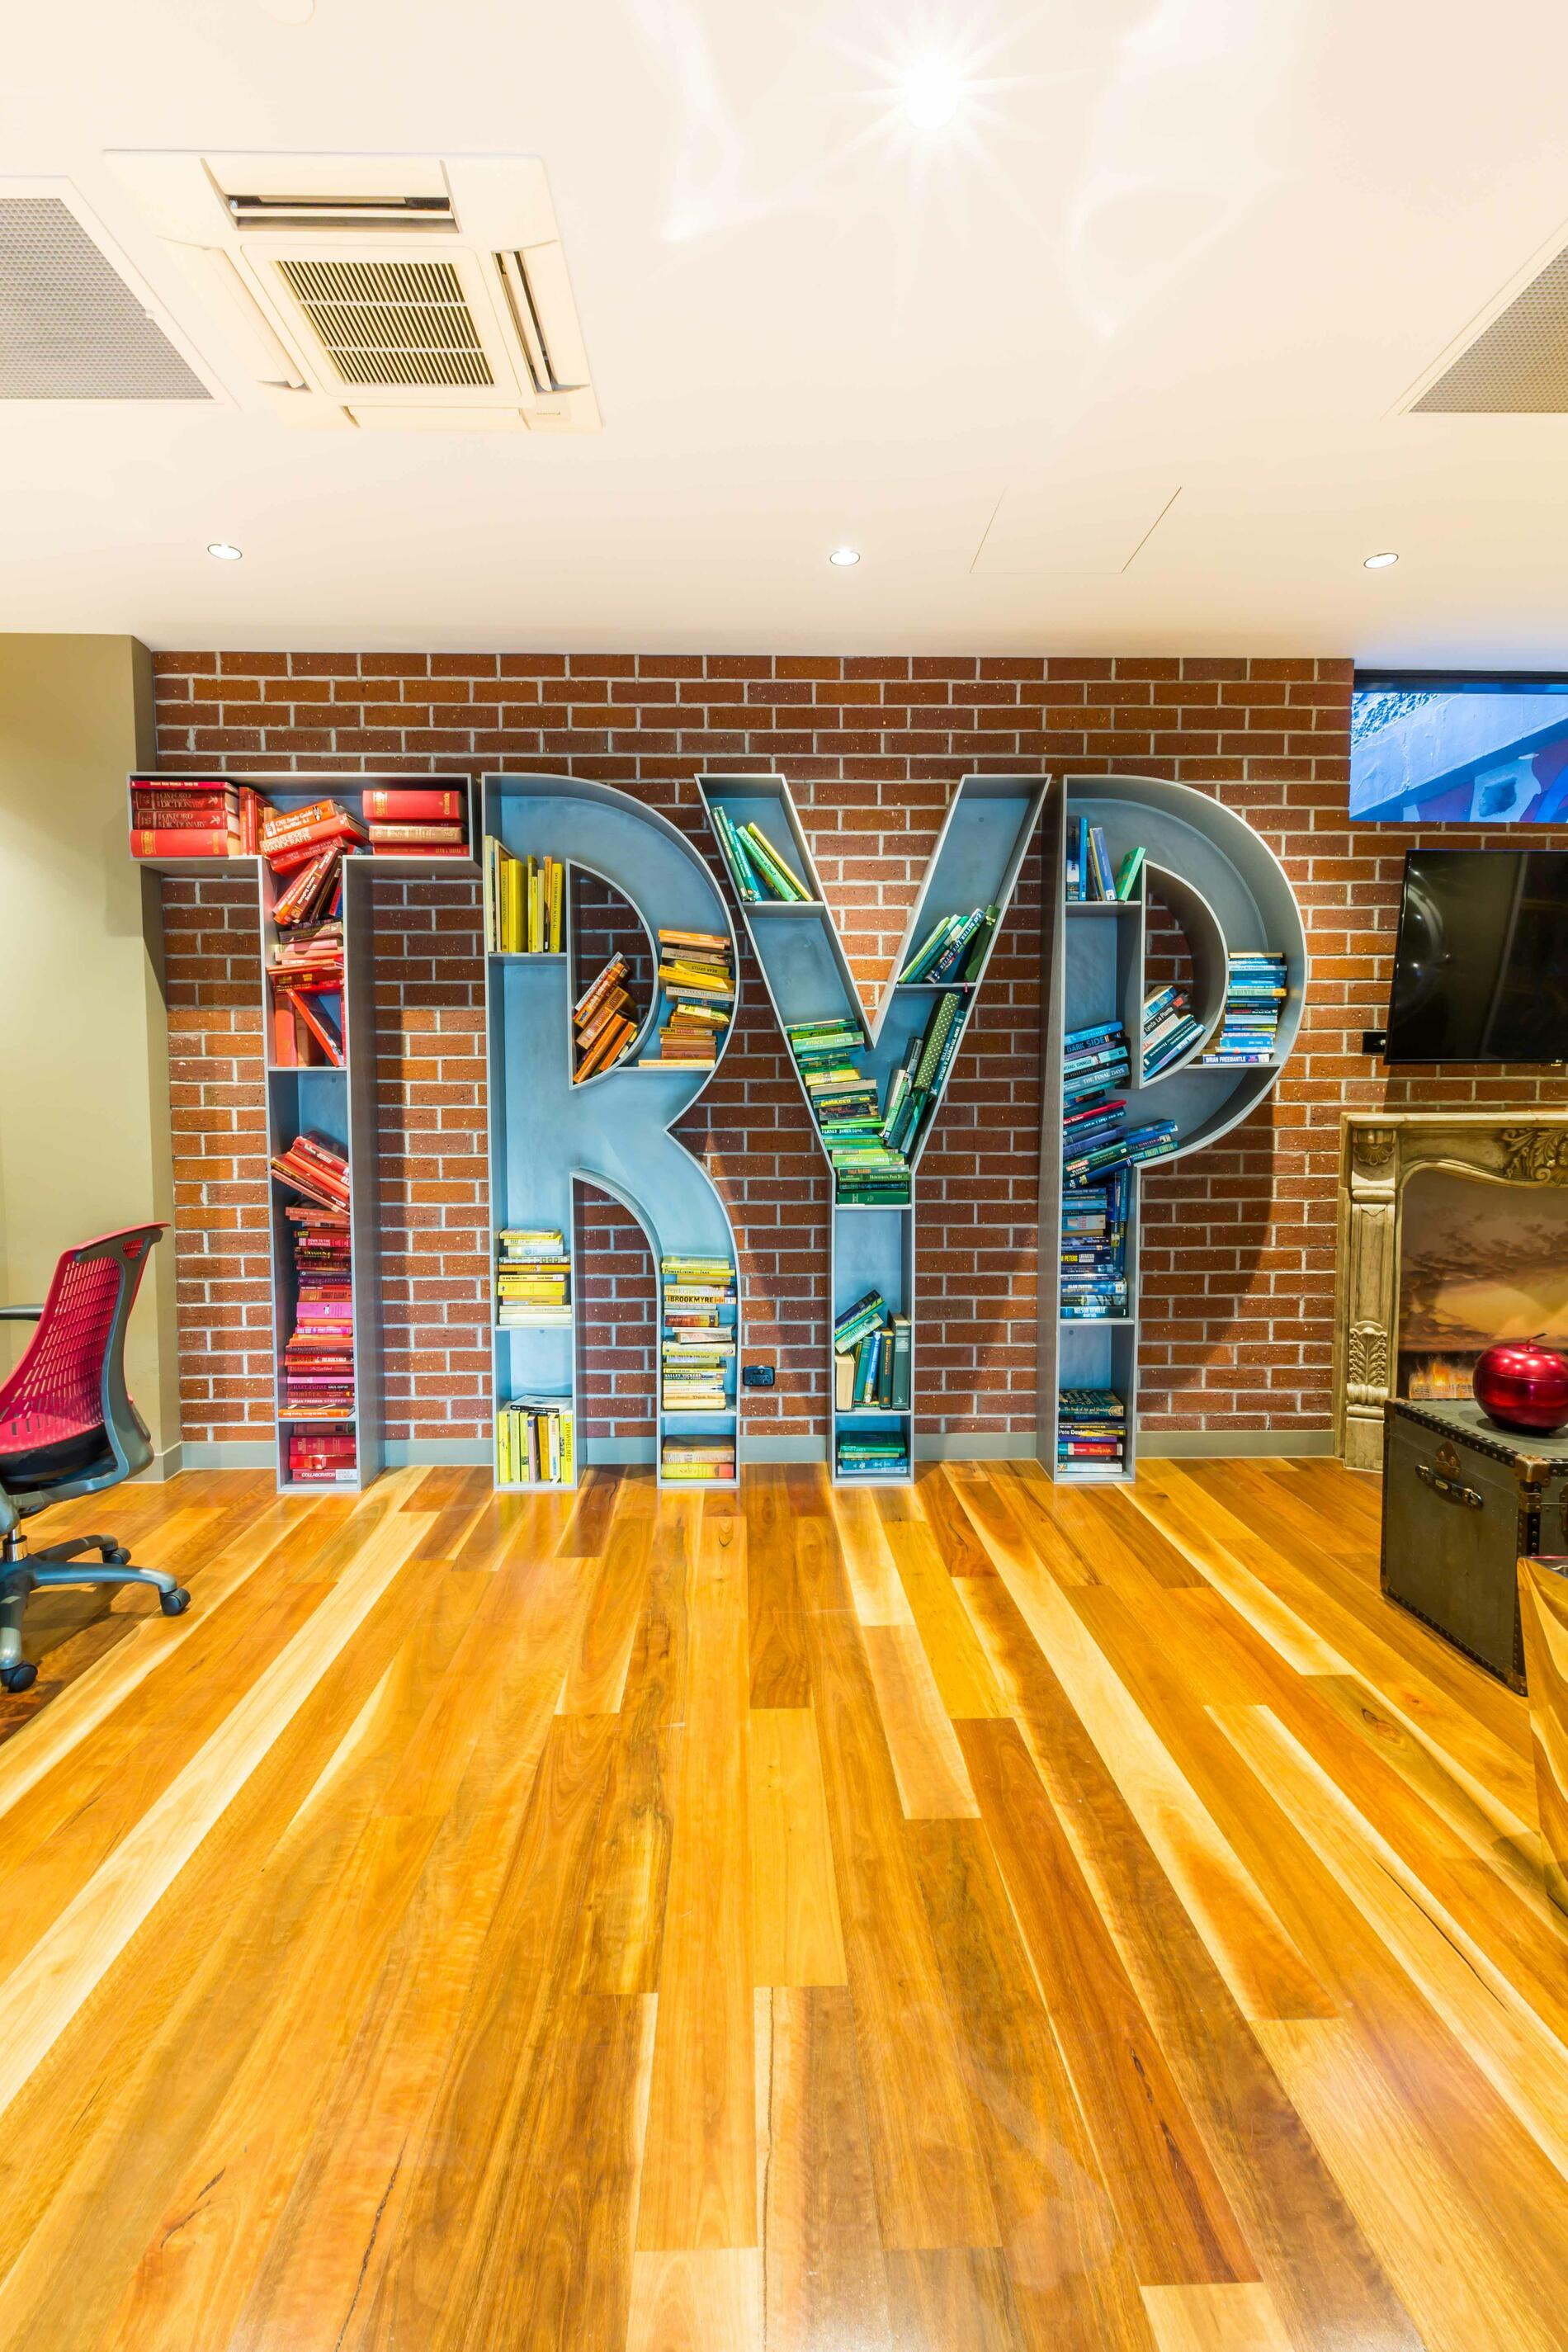 TRYP by Wyndham | Street Art Hotel in Fortitude Valley